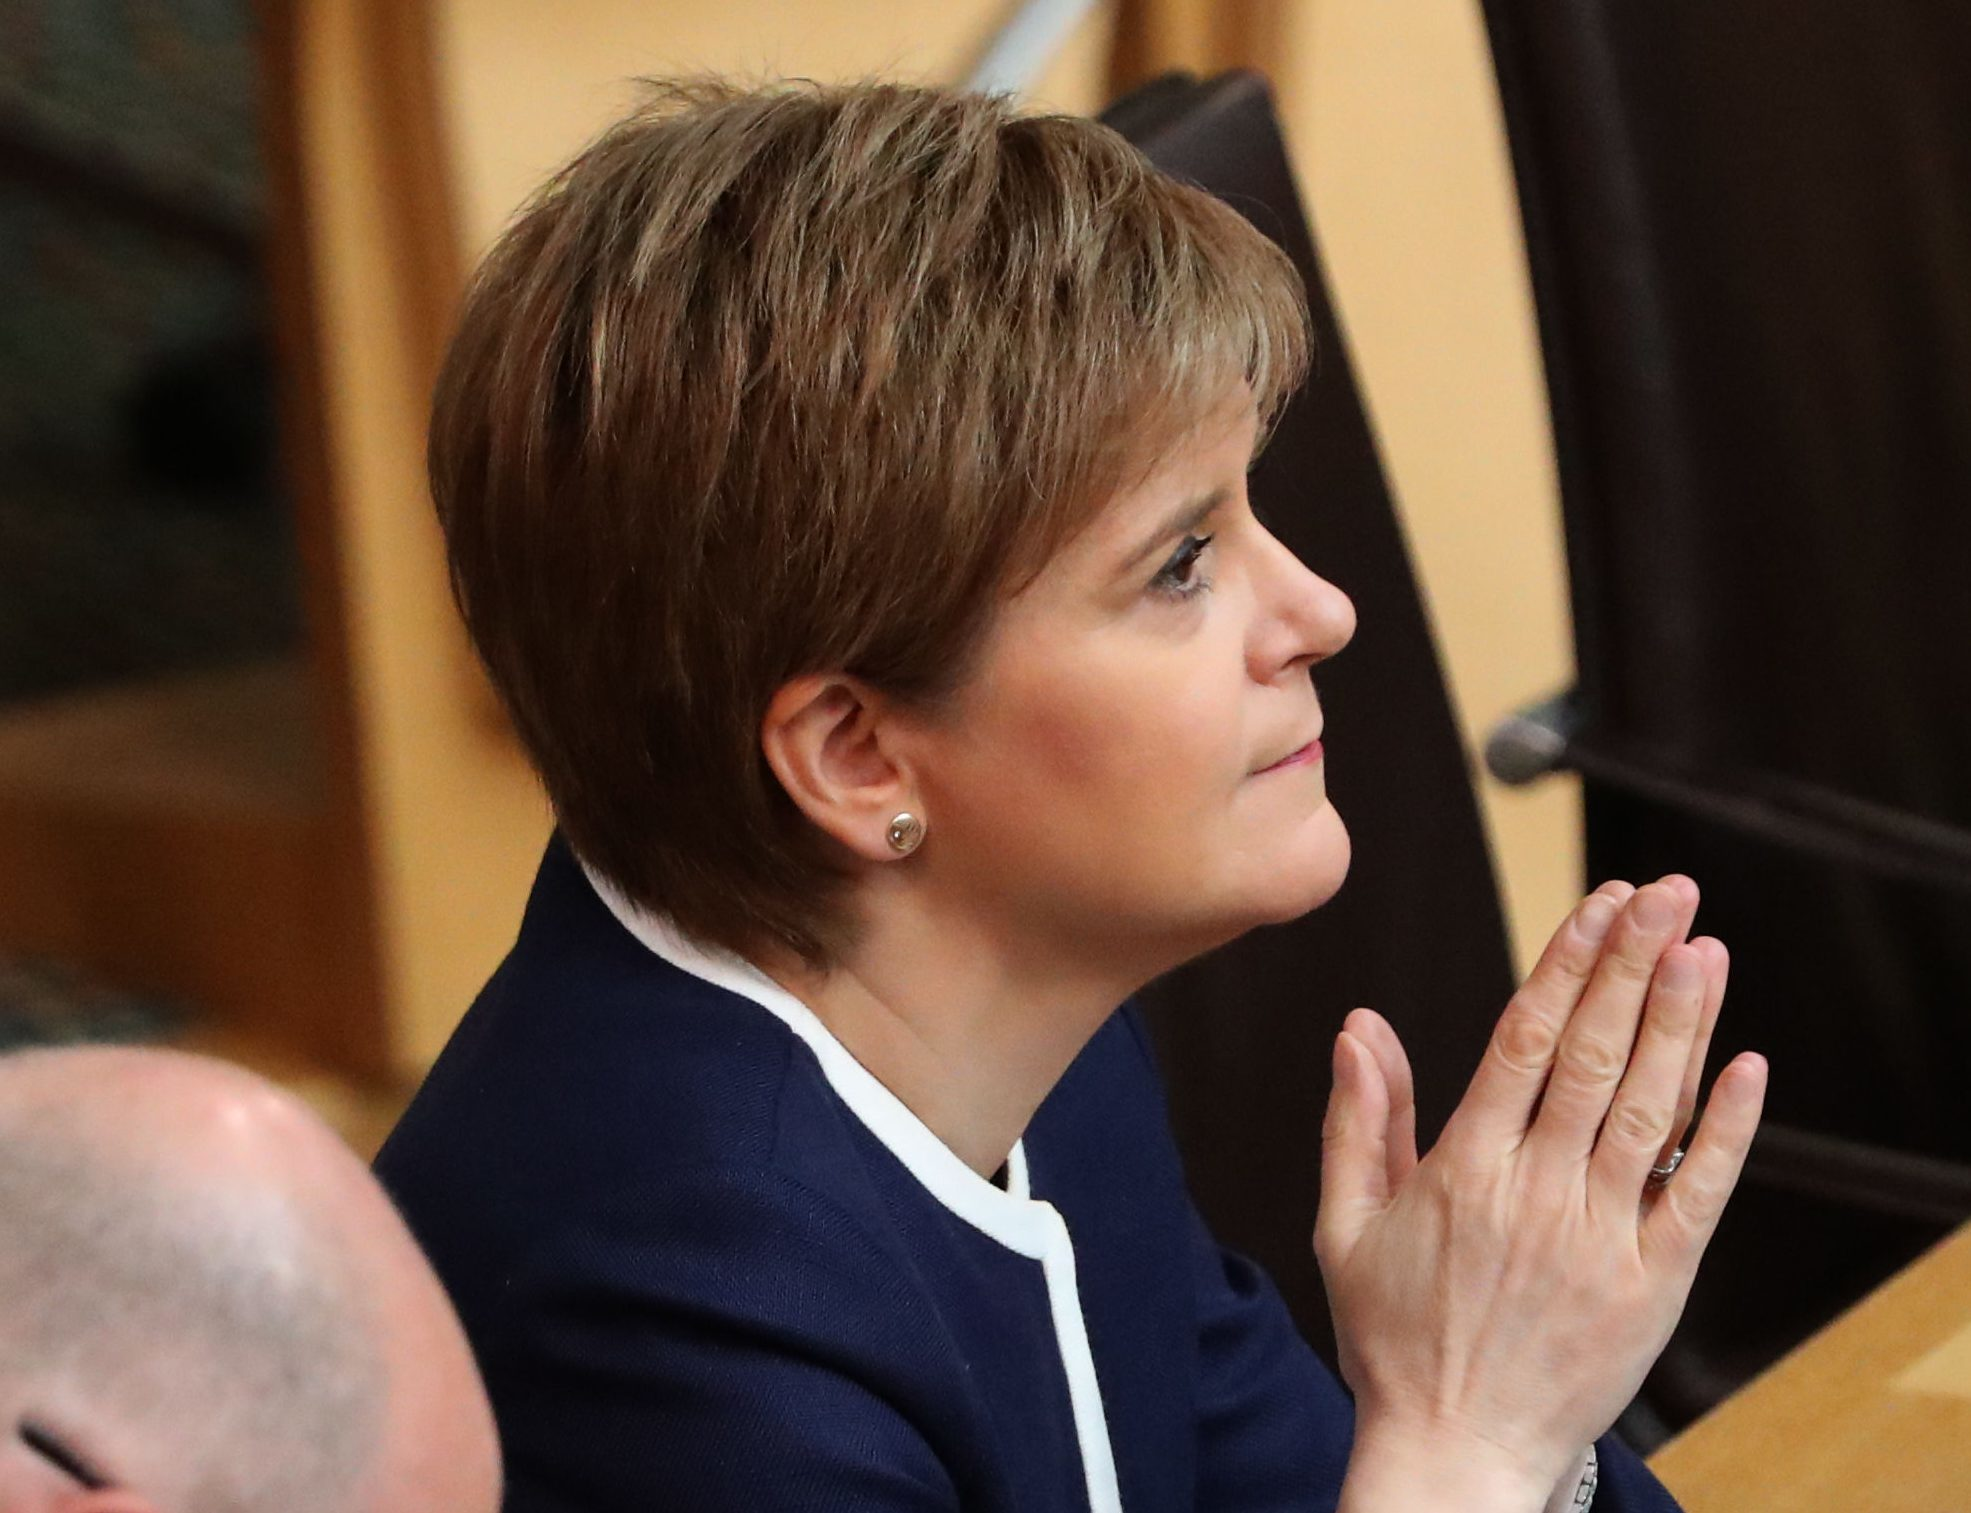 First Minister Nicola Sturgeon during FMQs, when she was questioned about her stance on fox hunting (Andrew Milligan/PA Wire)